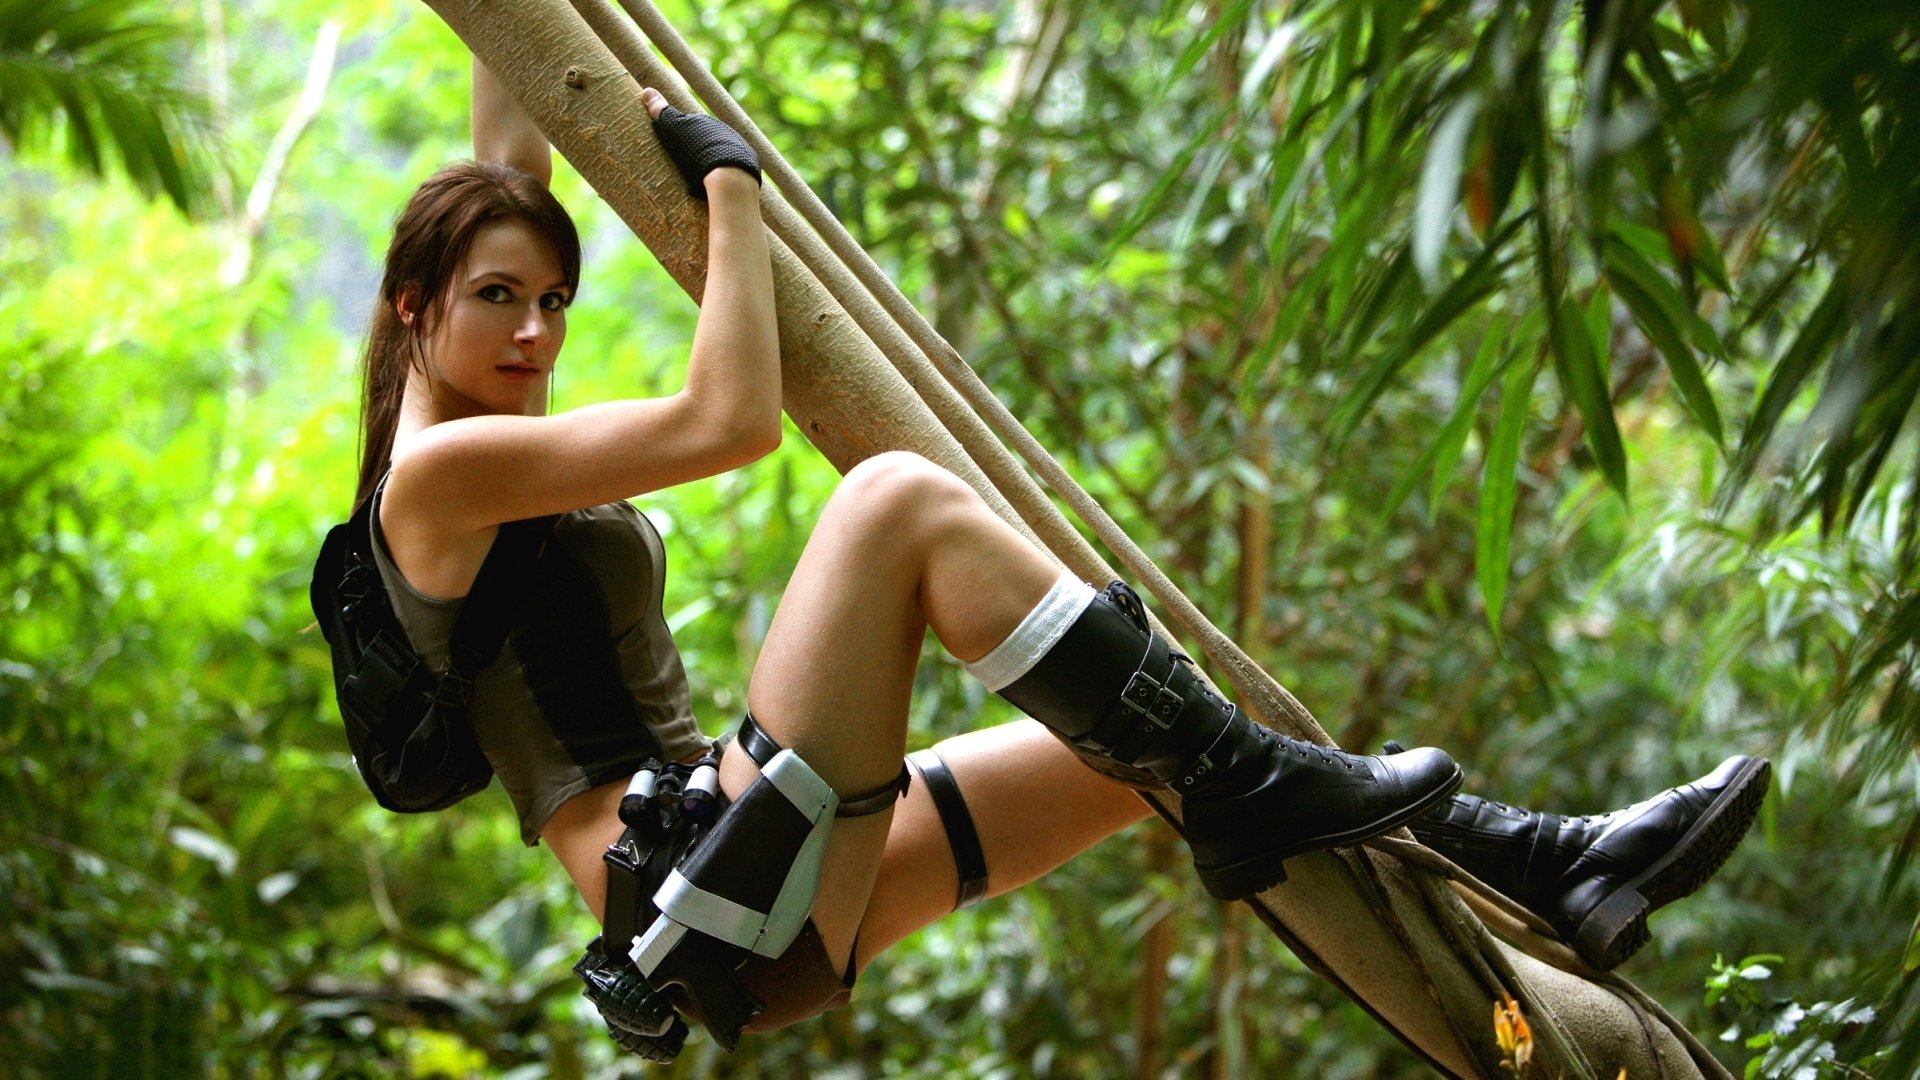 Women - Model  Lara Croft Wallpaper